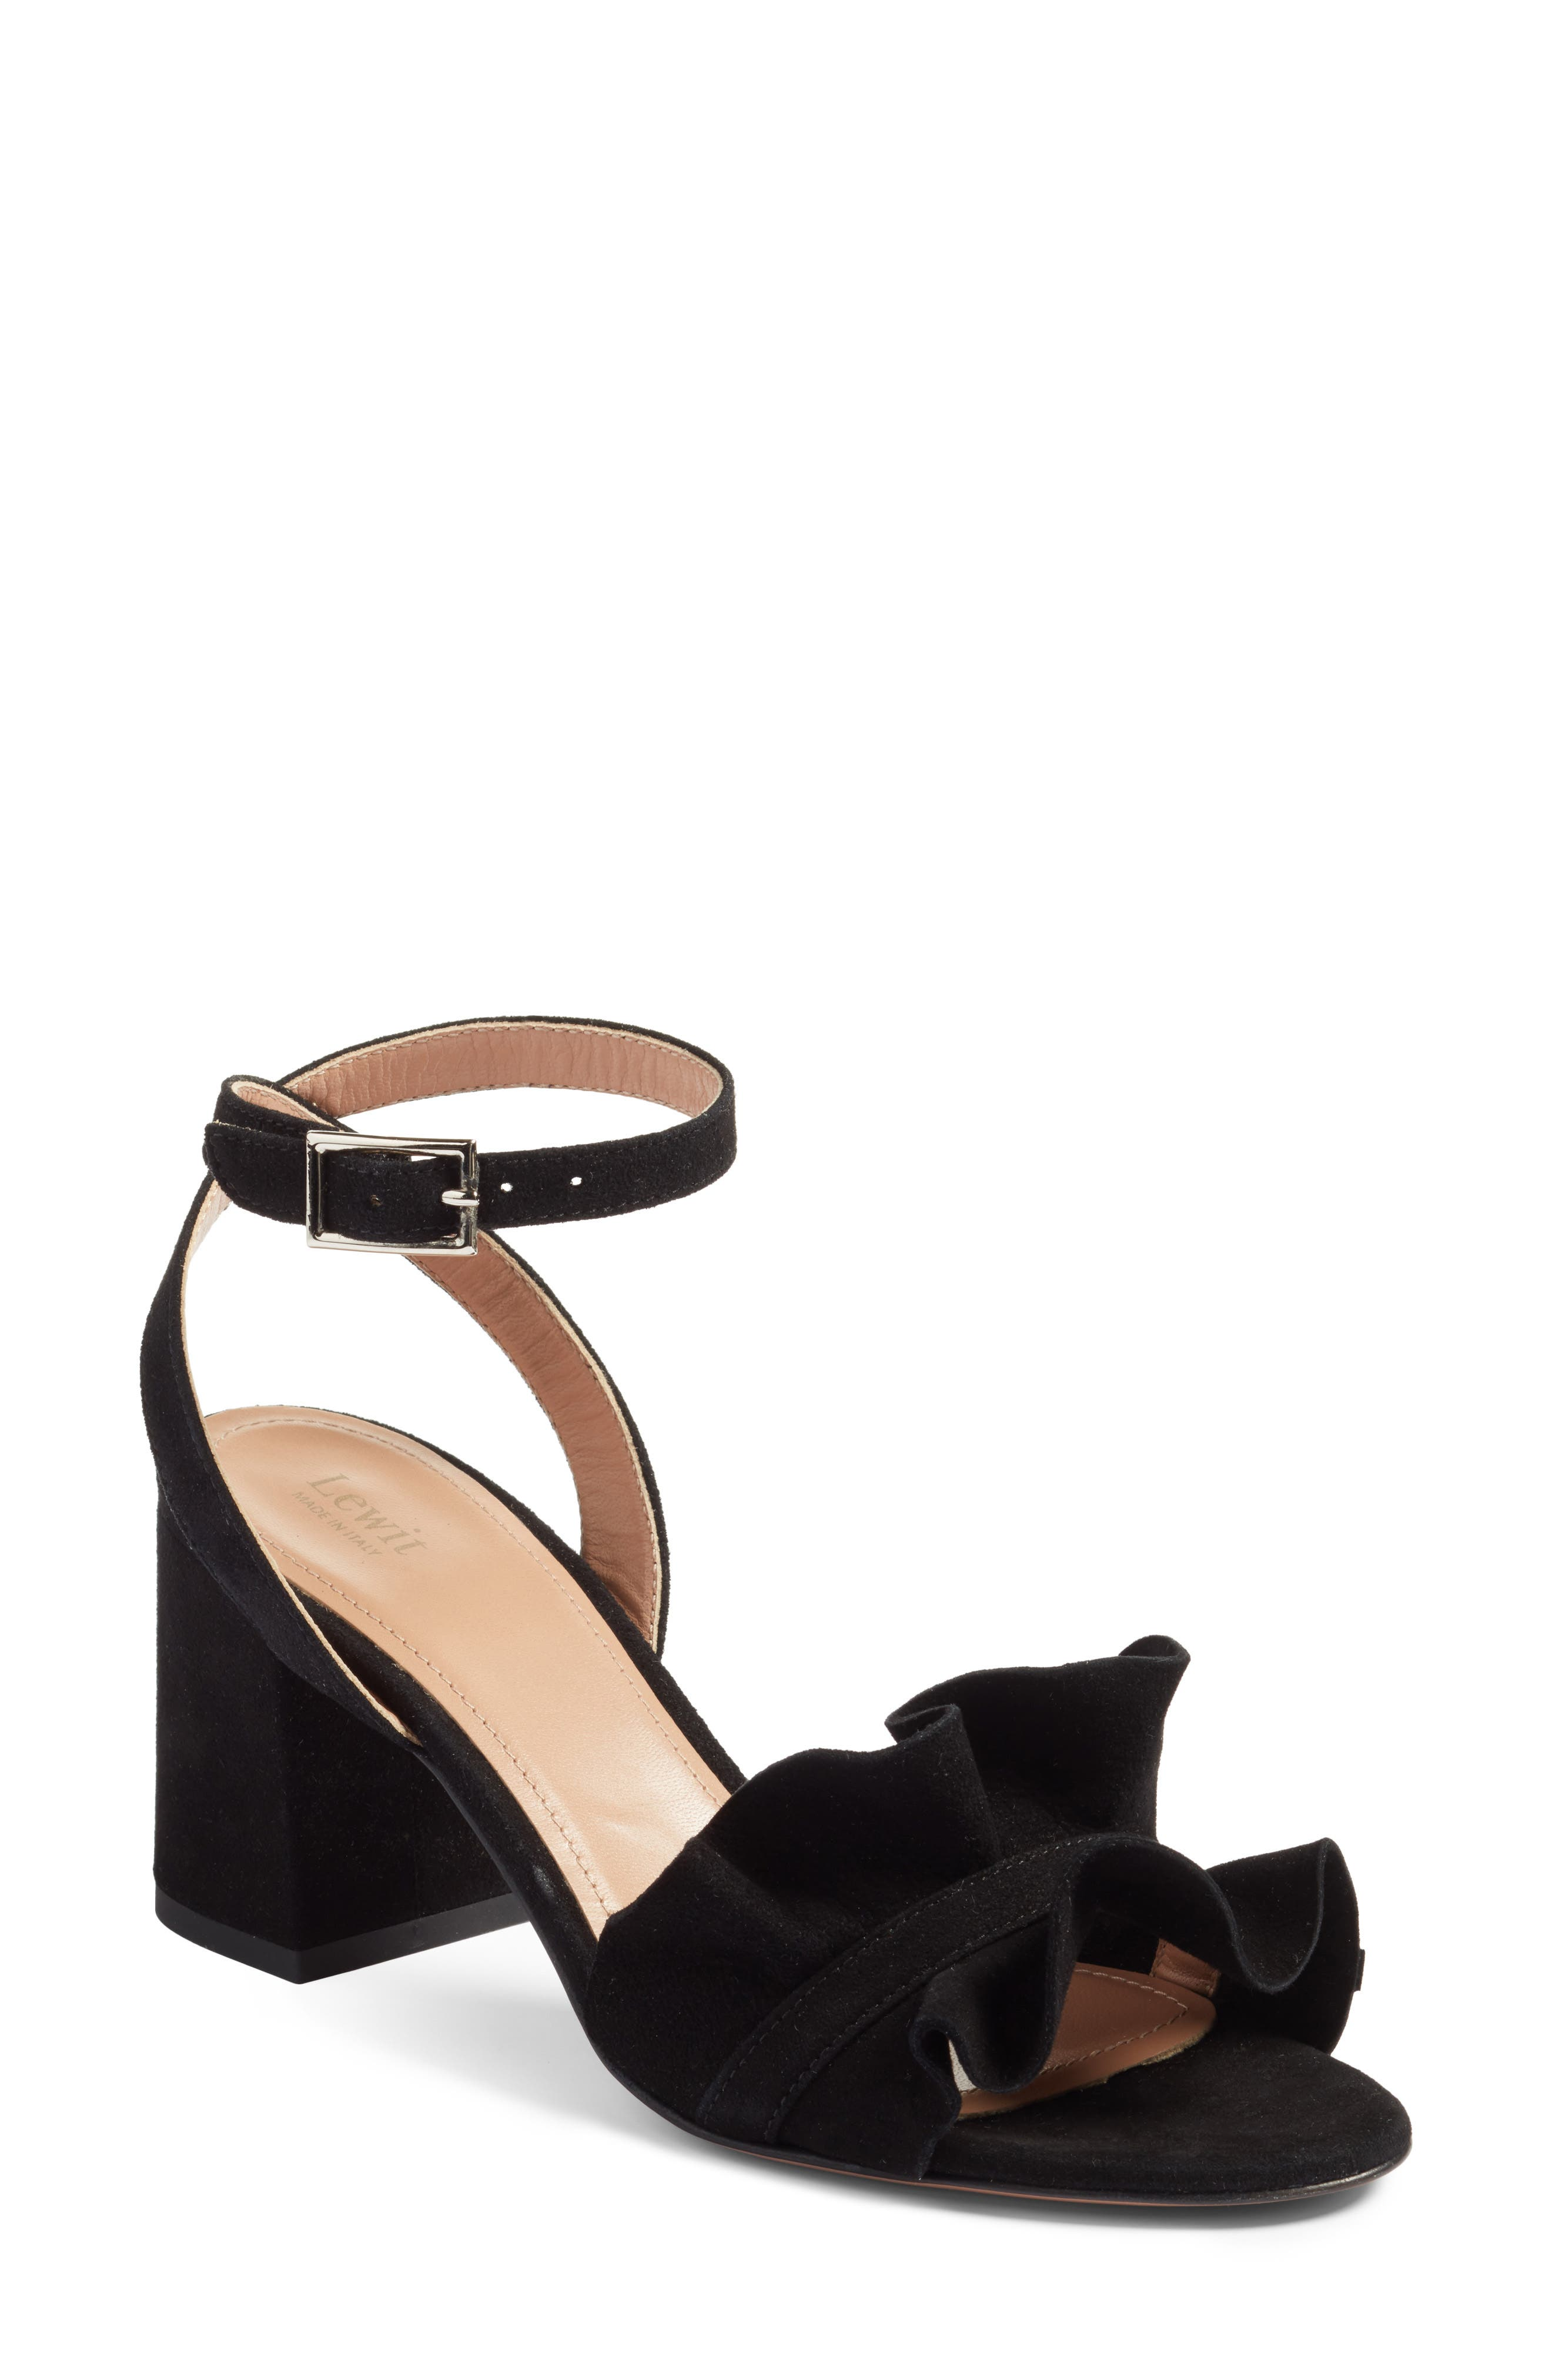 Alternate Image 1 Selected - Lewit Lucina Ankle Strap Sandal (Women)